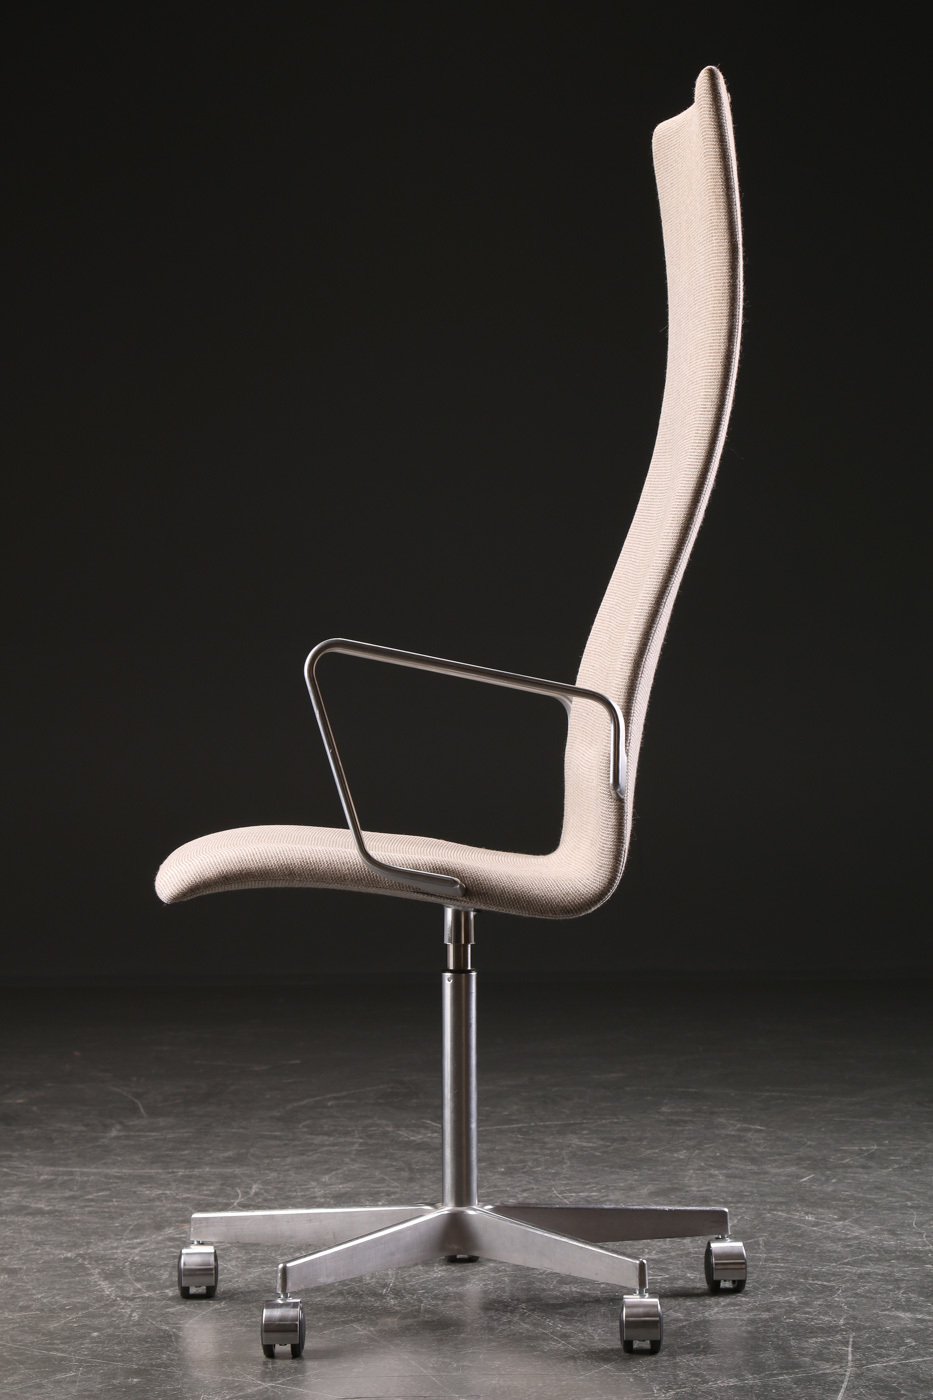 Arne Jacobsen. Oxford office chair with armrests, model 3292